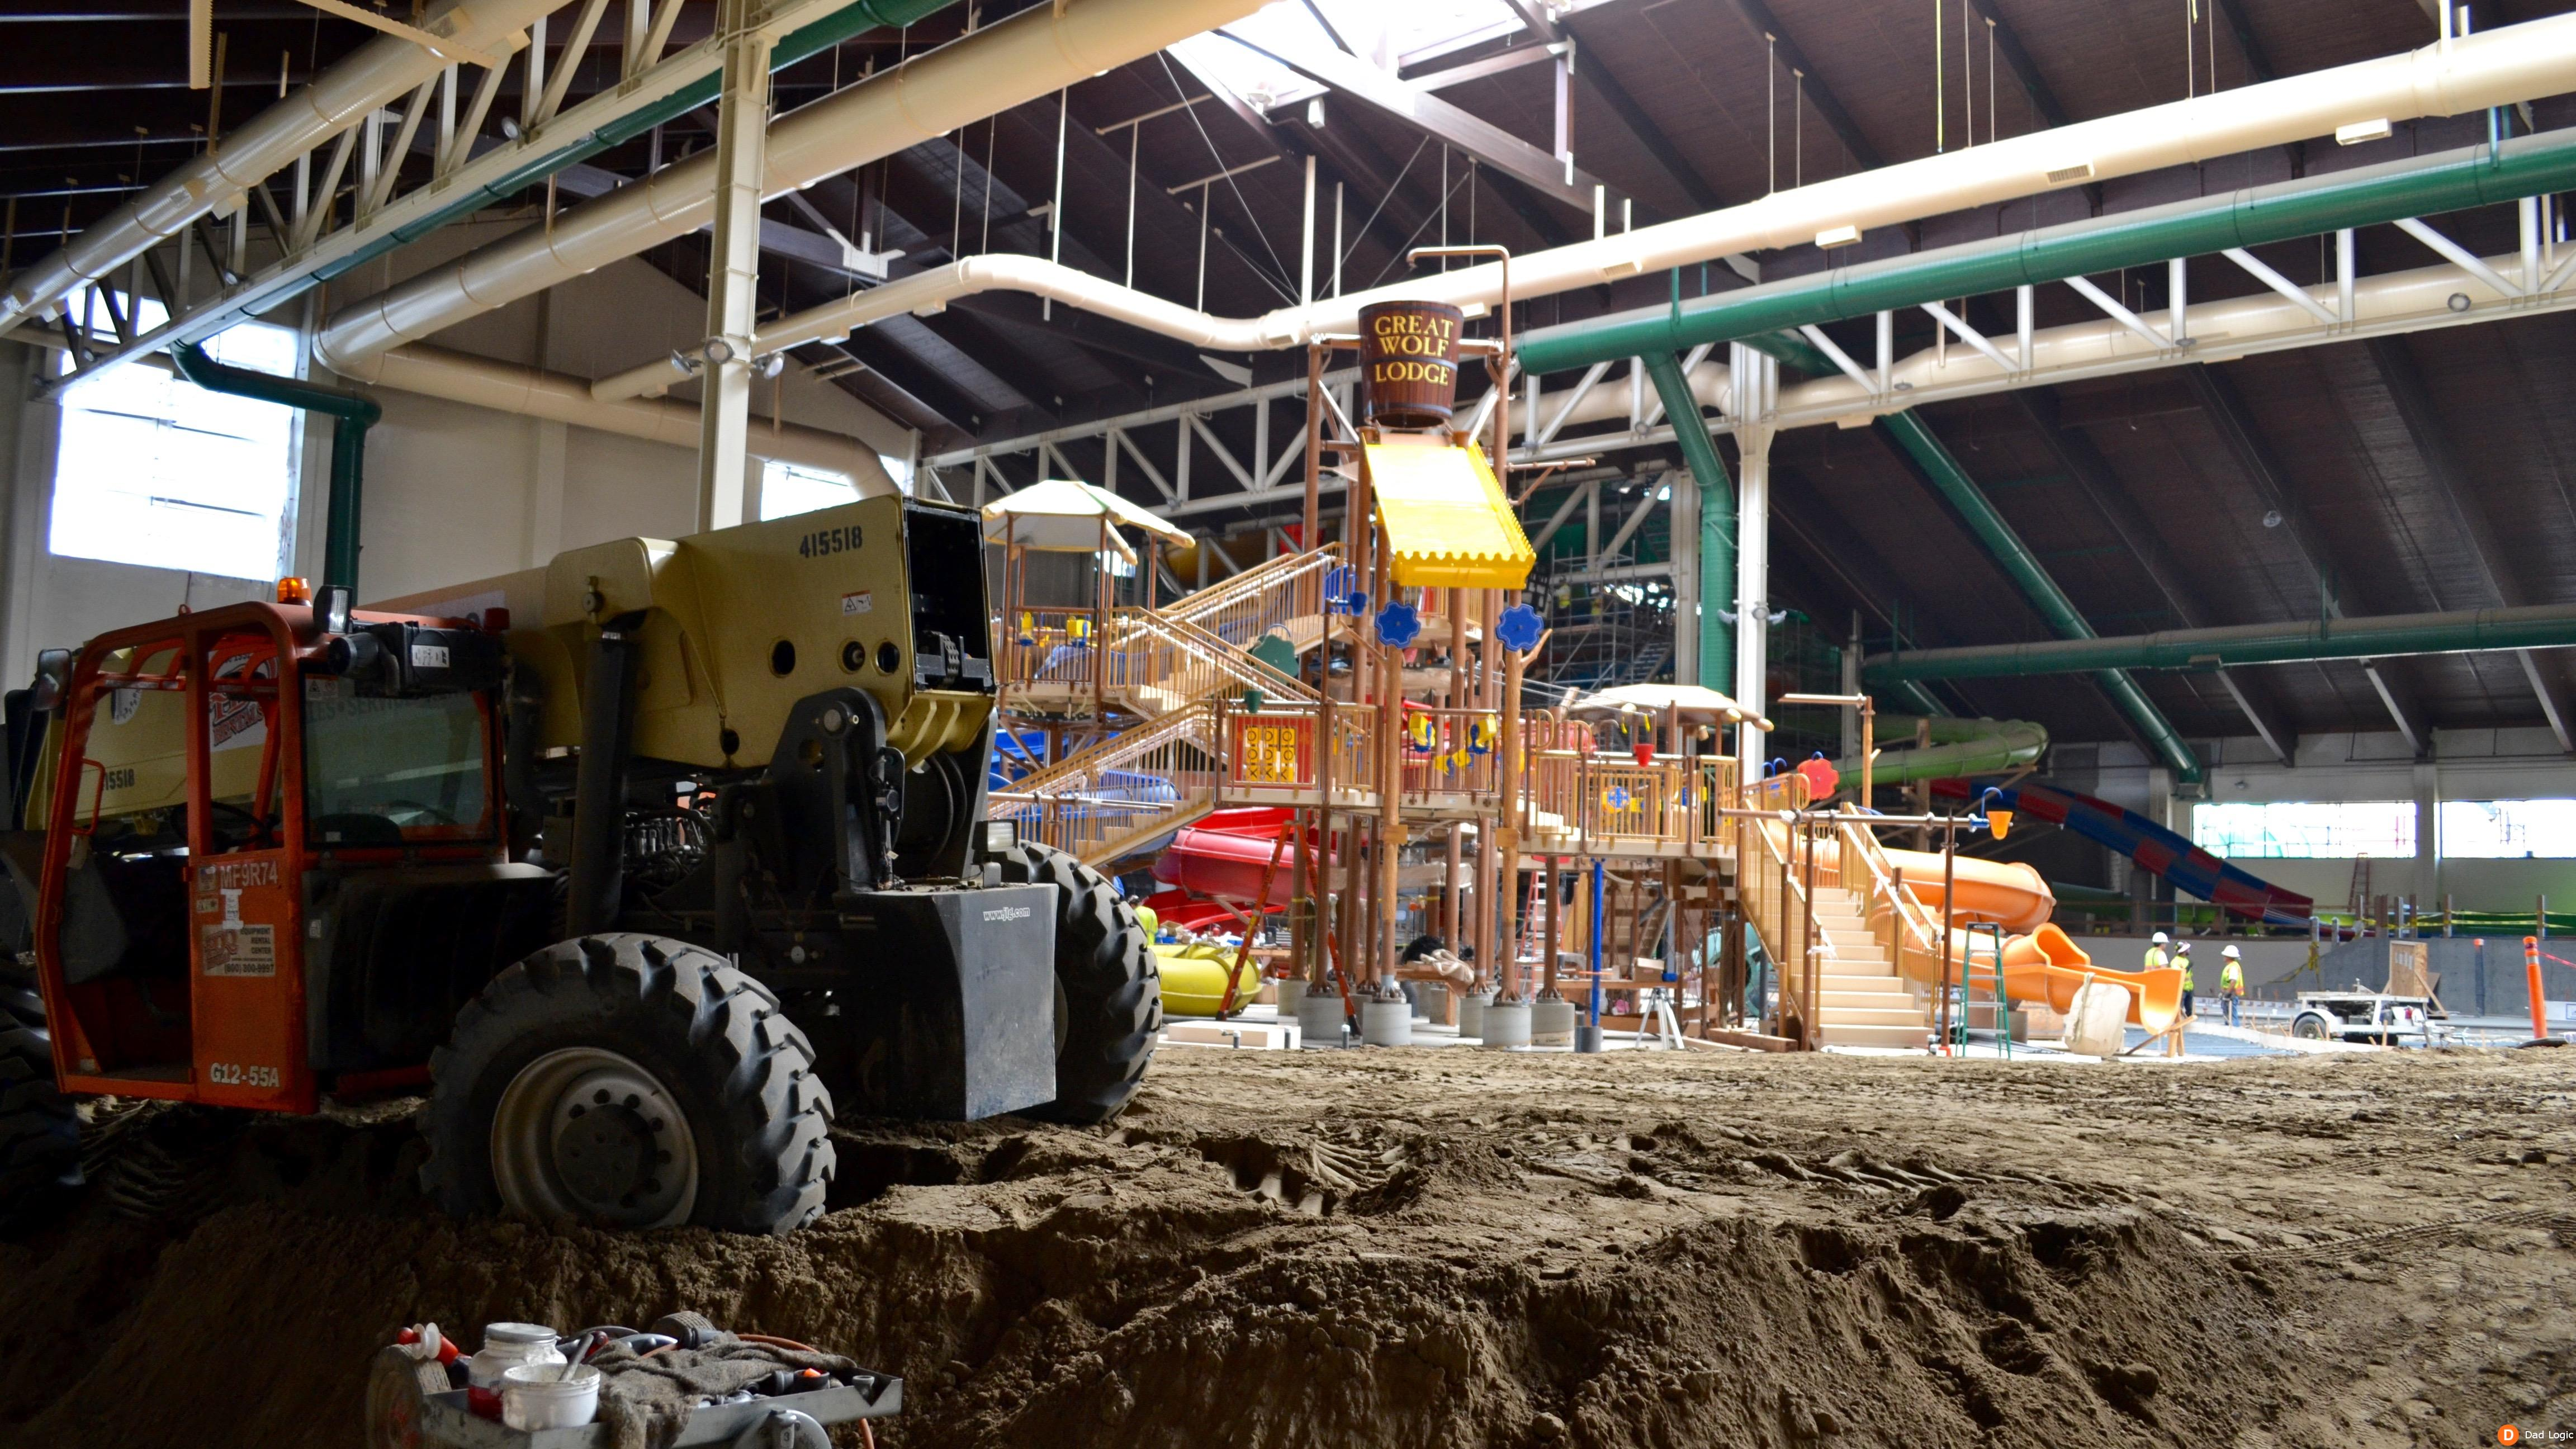 Great Wolf Lodge Southern California Opens In March 2016 Construction Photos Dad Logic